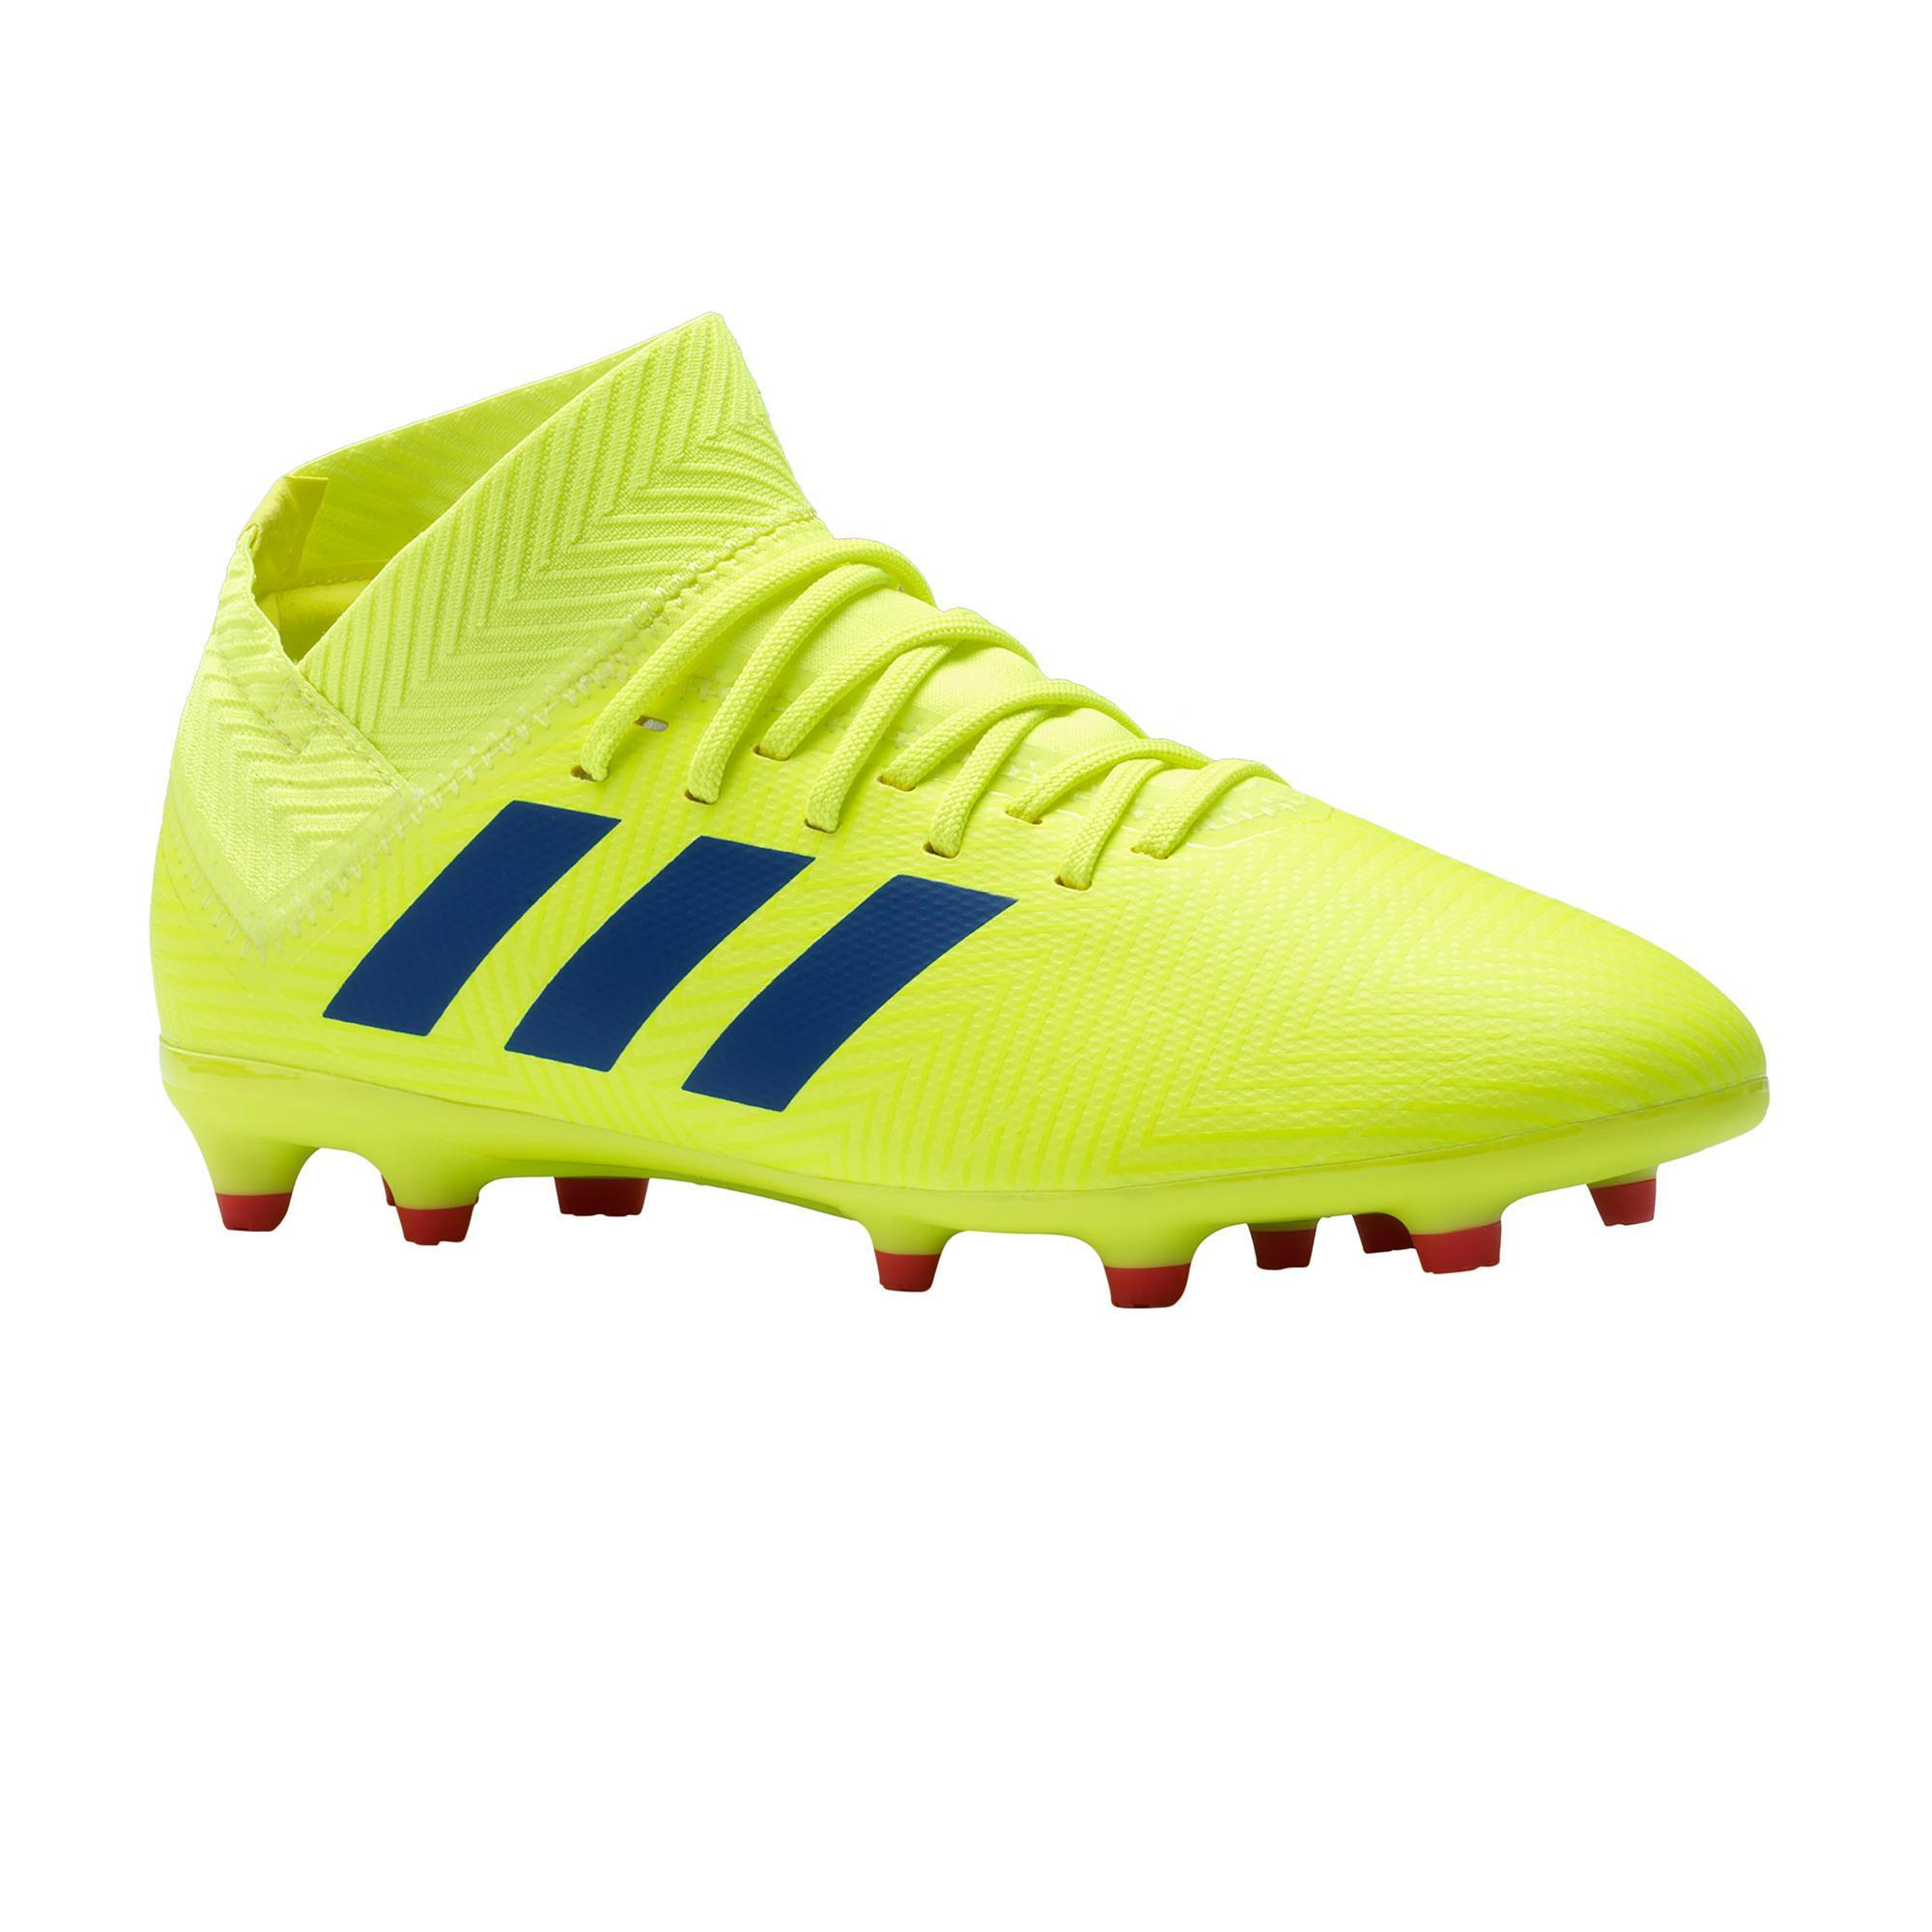 good service new product reputable site Chaussures de Football pas cher: Kipsta, Nike, Adidas, Puma ...